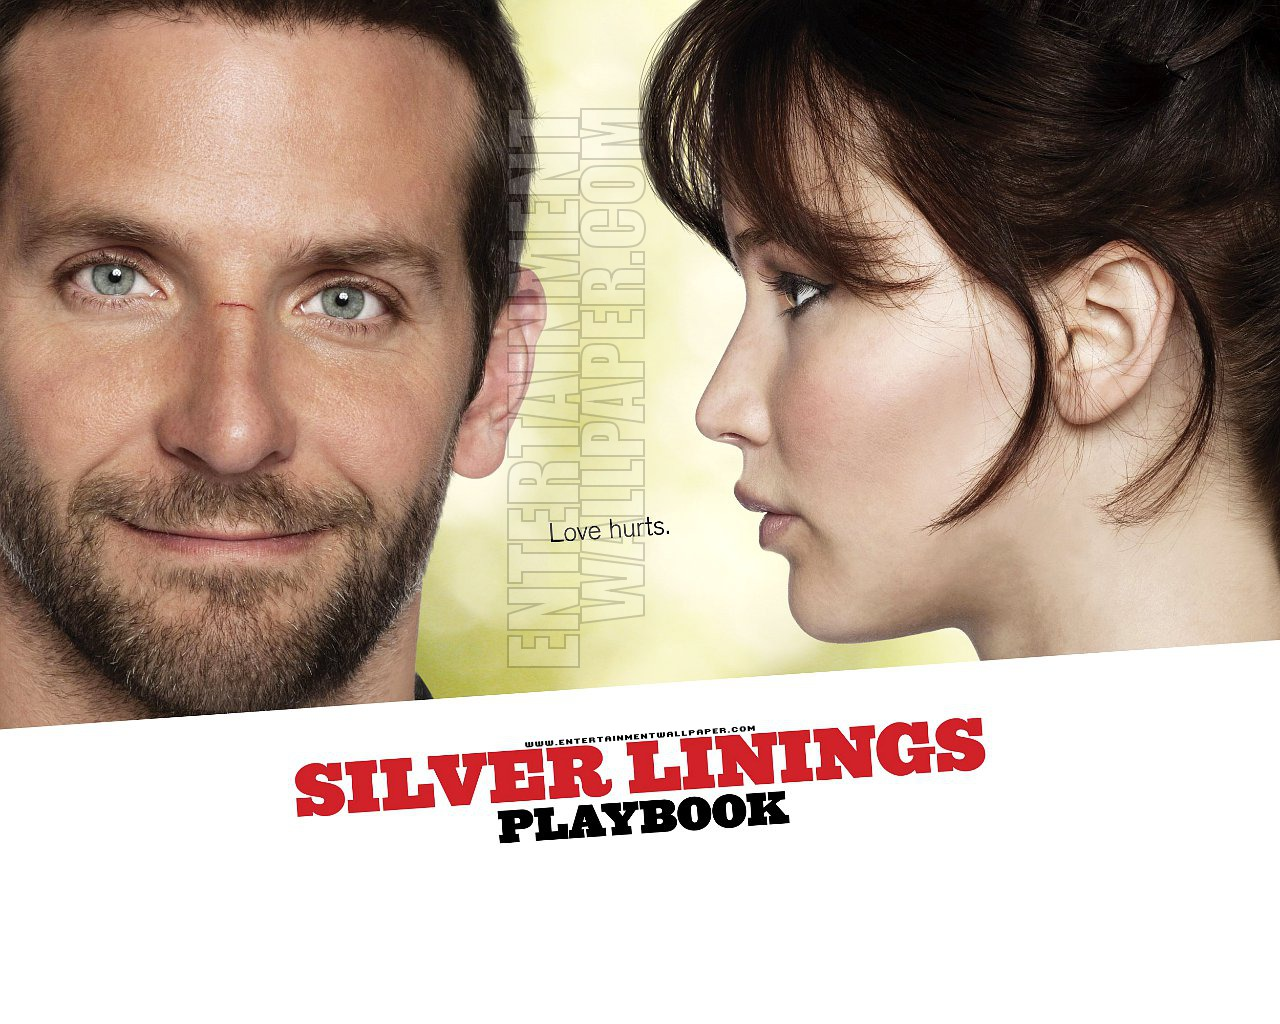 ... Killing Them Softly, Life of Pi, Silver Lining's Playbook and Red Dawn